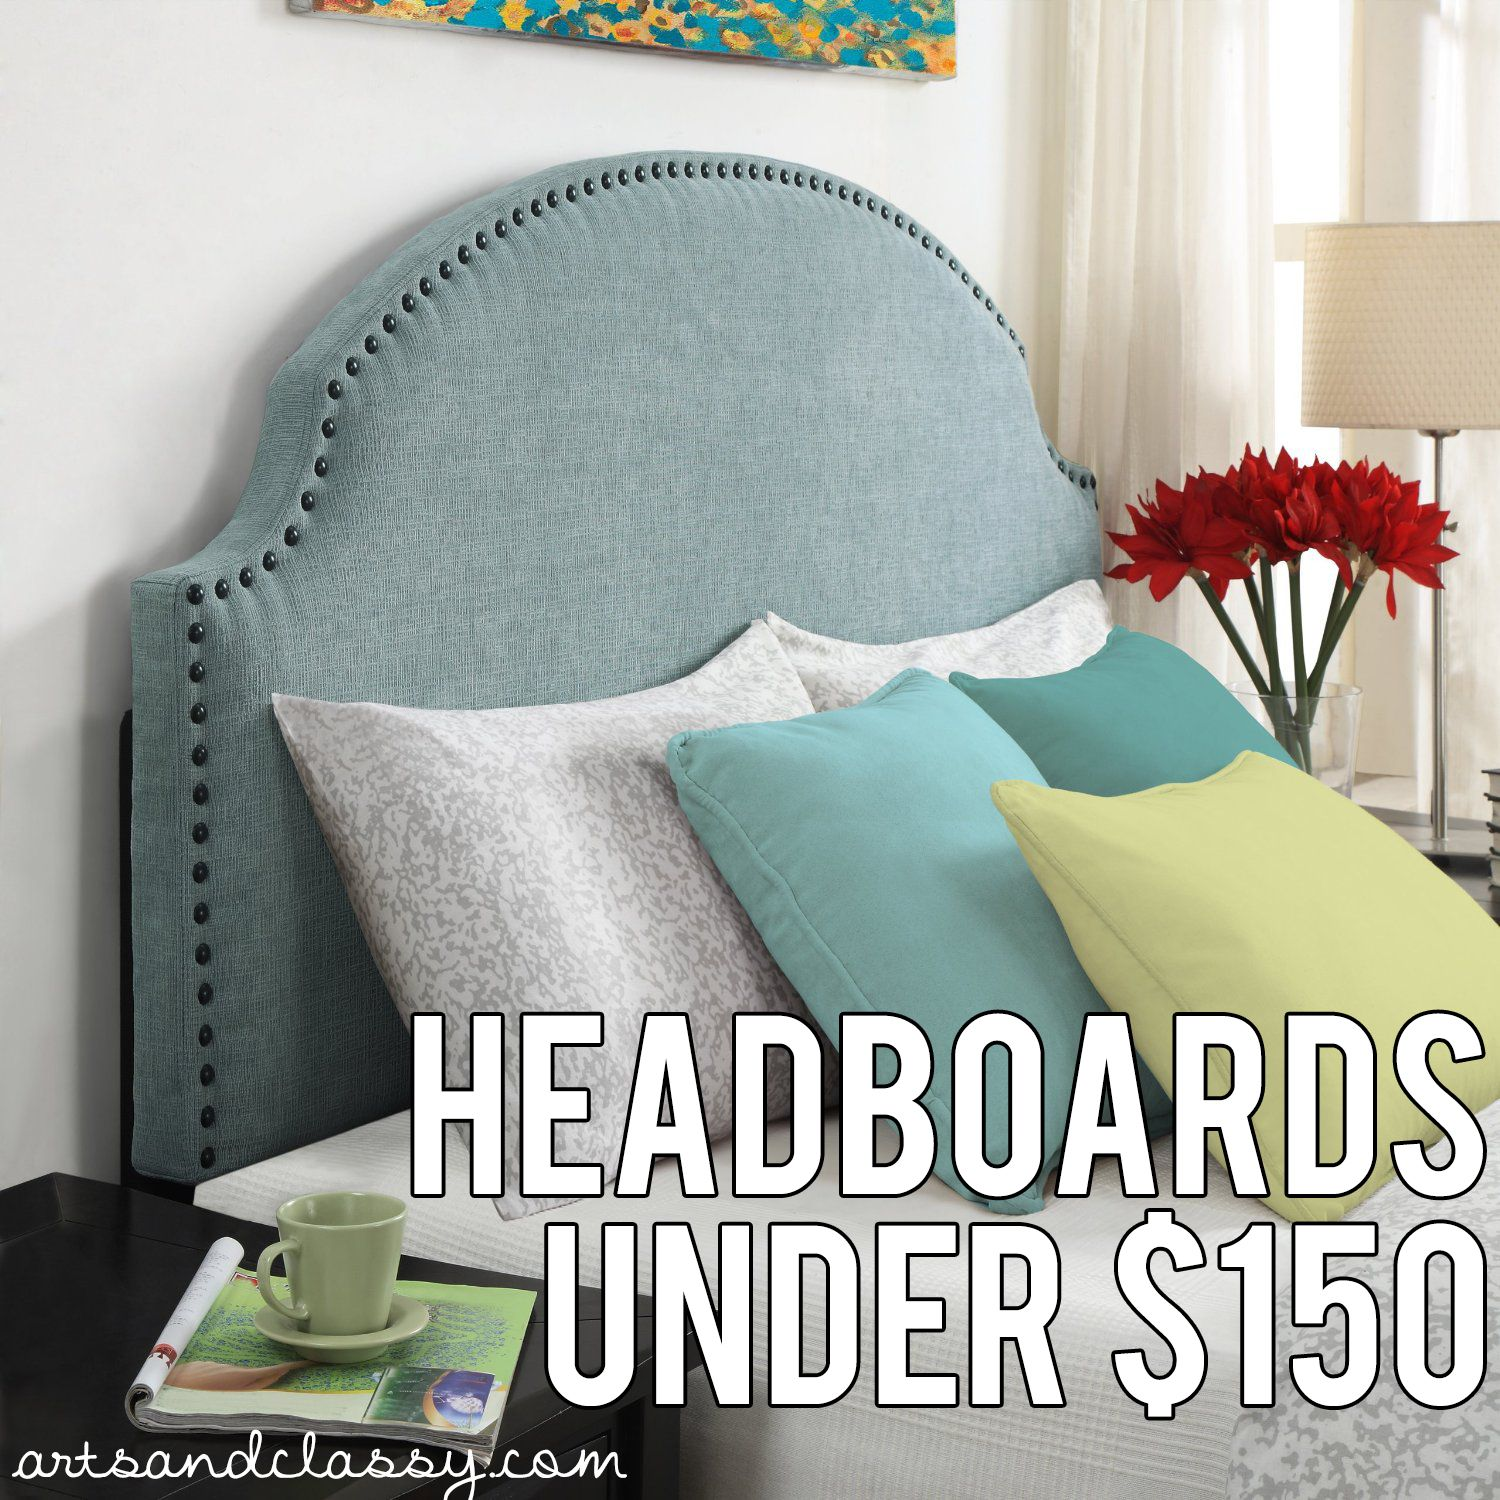 Bedroom Ideas Headboards Under $150